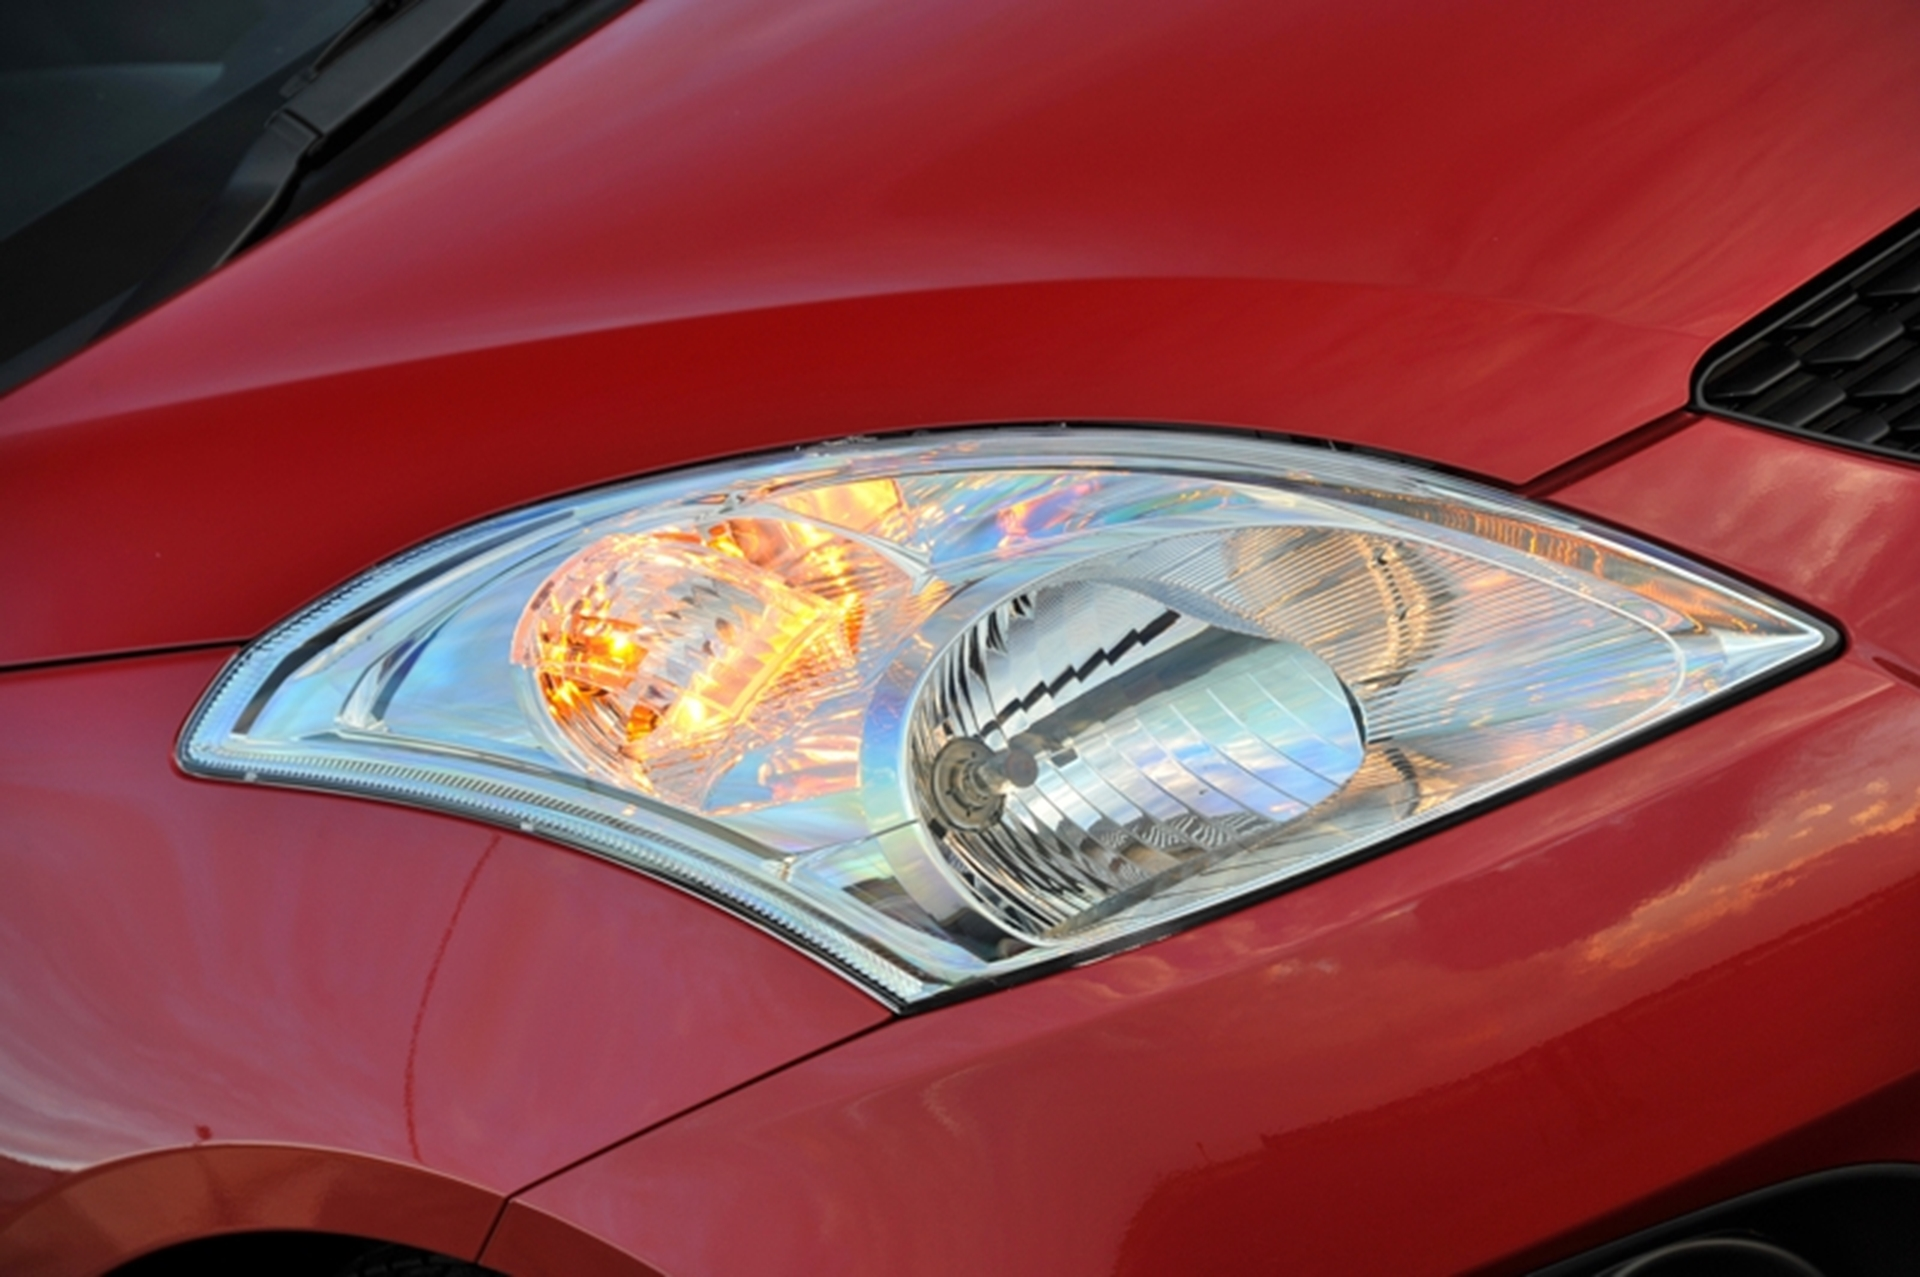 Suzuki Swift Lights